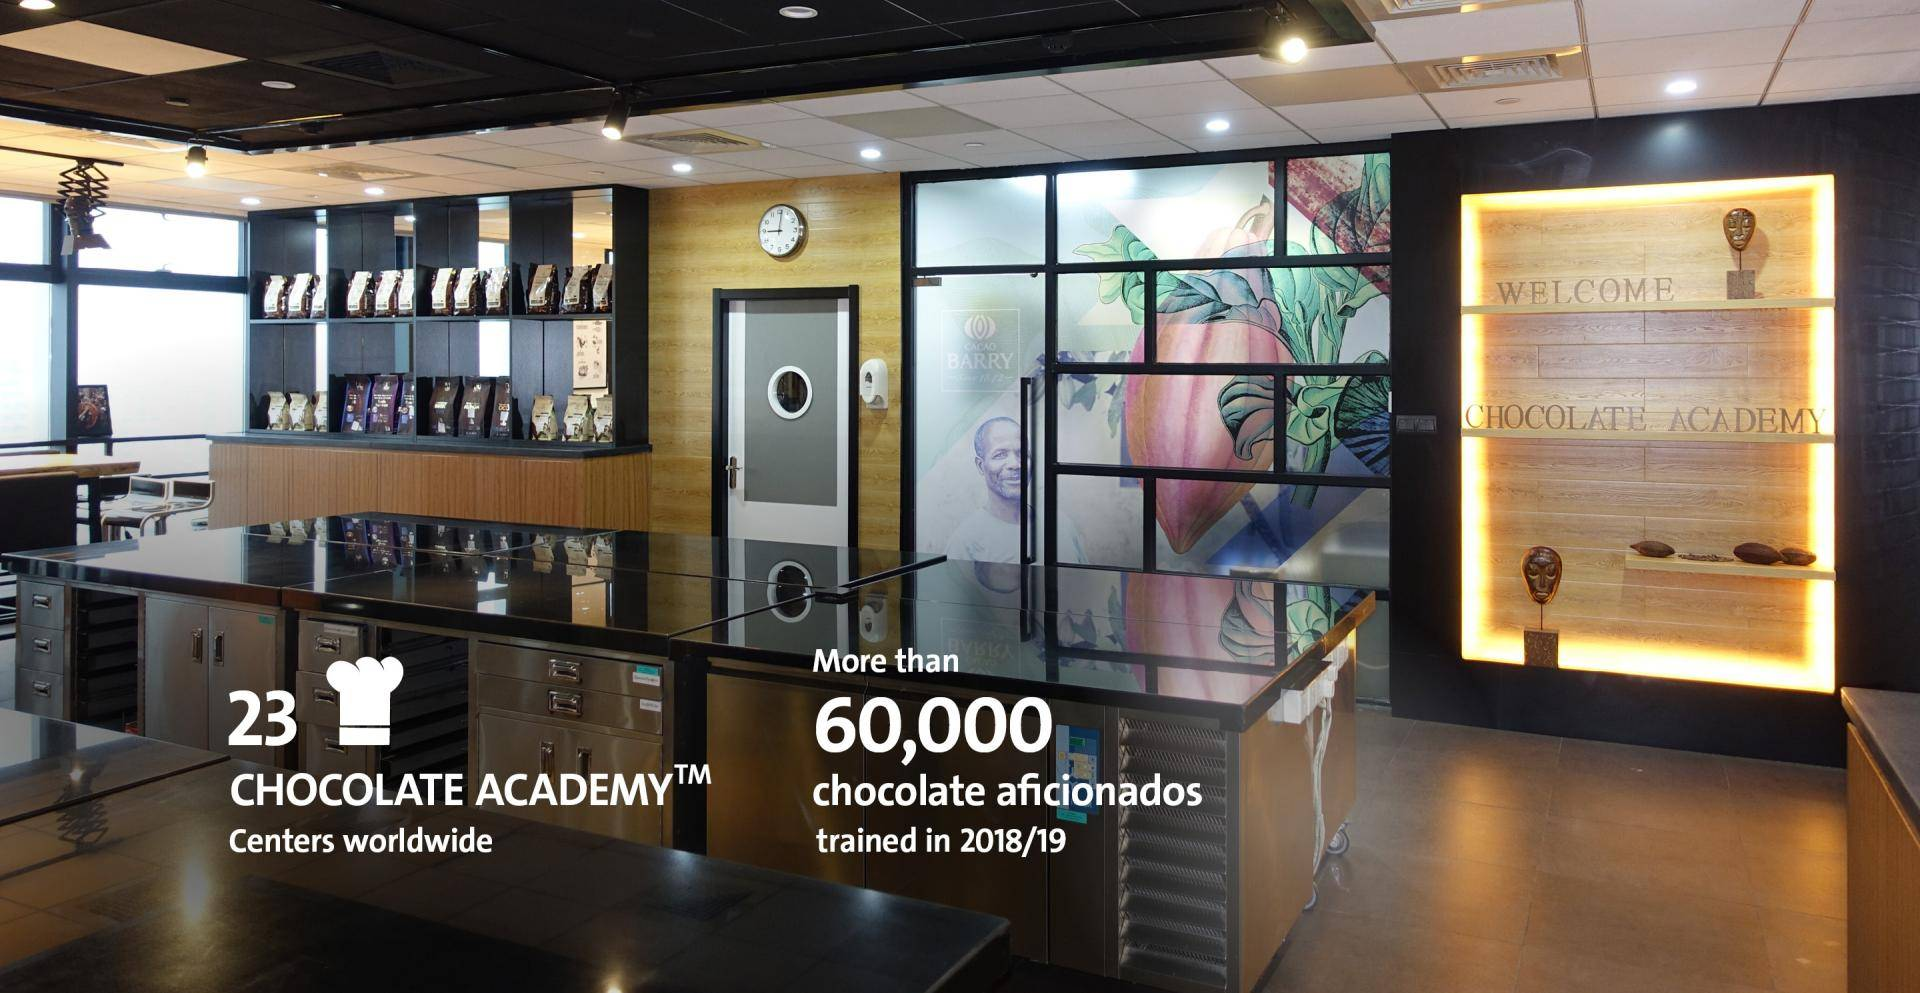 Image Slider Chocolate Academy Fiscal Year 2018/19 Barry Callebaut